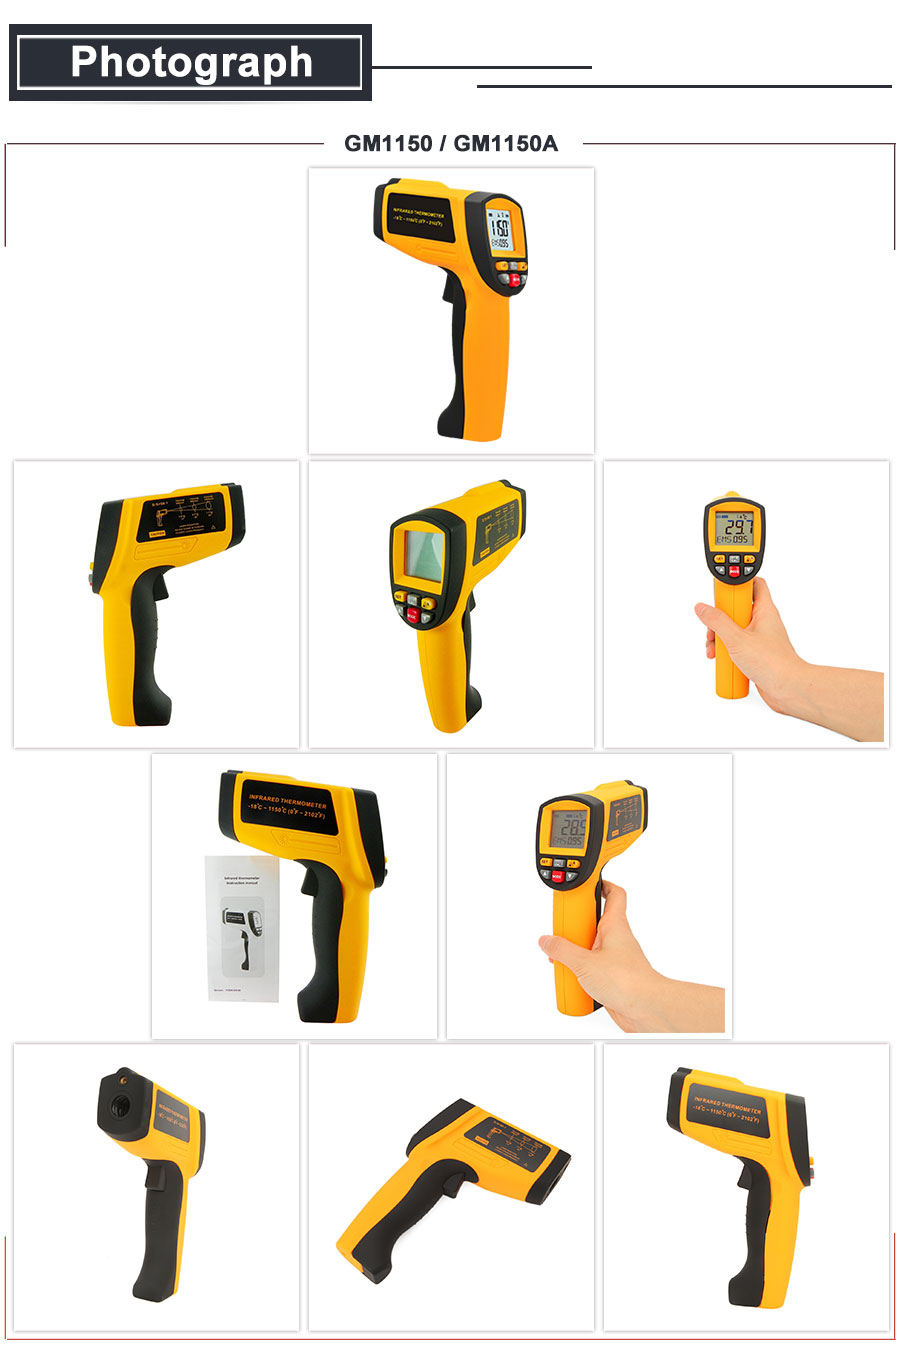 HTB1tOwrbeP2gK0jSZFoq6yuIVXap RZ IR Infrared Thermometer Thermal Imager Handheld Digital Electronic Outdoor Non-Contact Laser Pyrometer Point Gun Thermometer